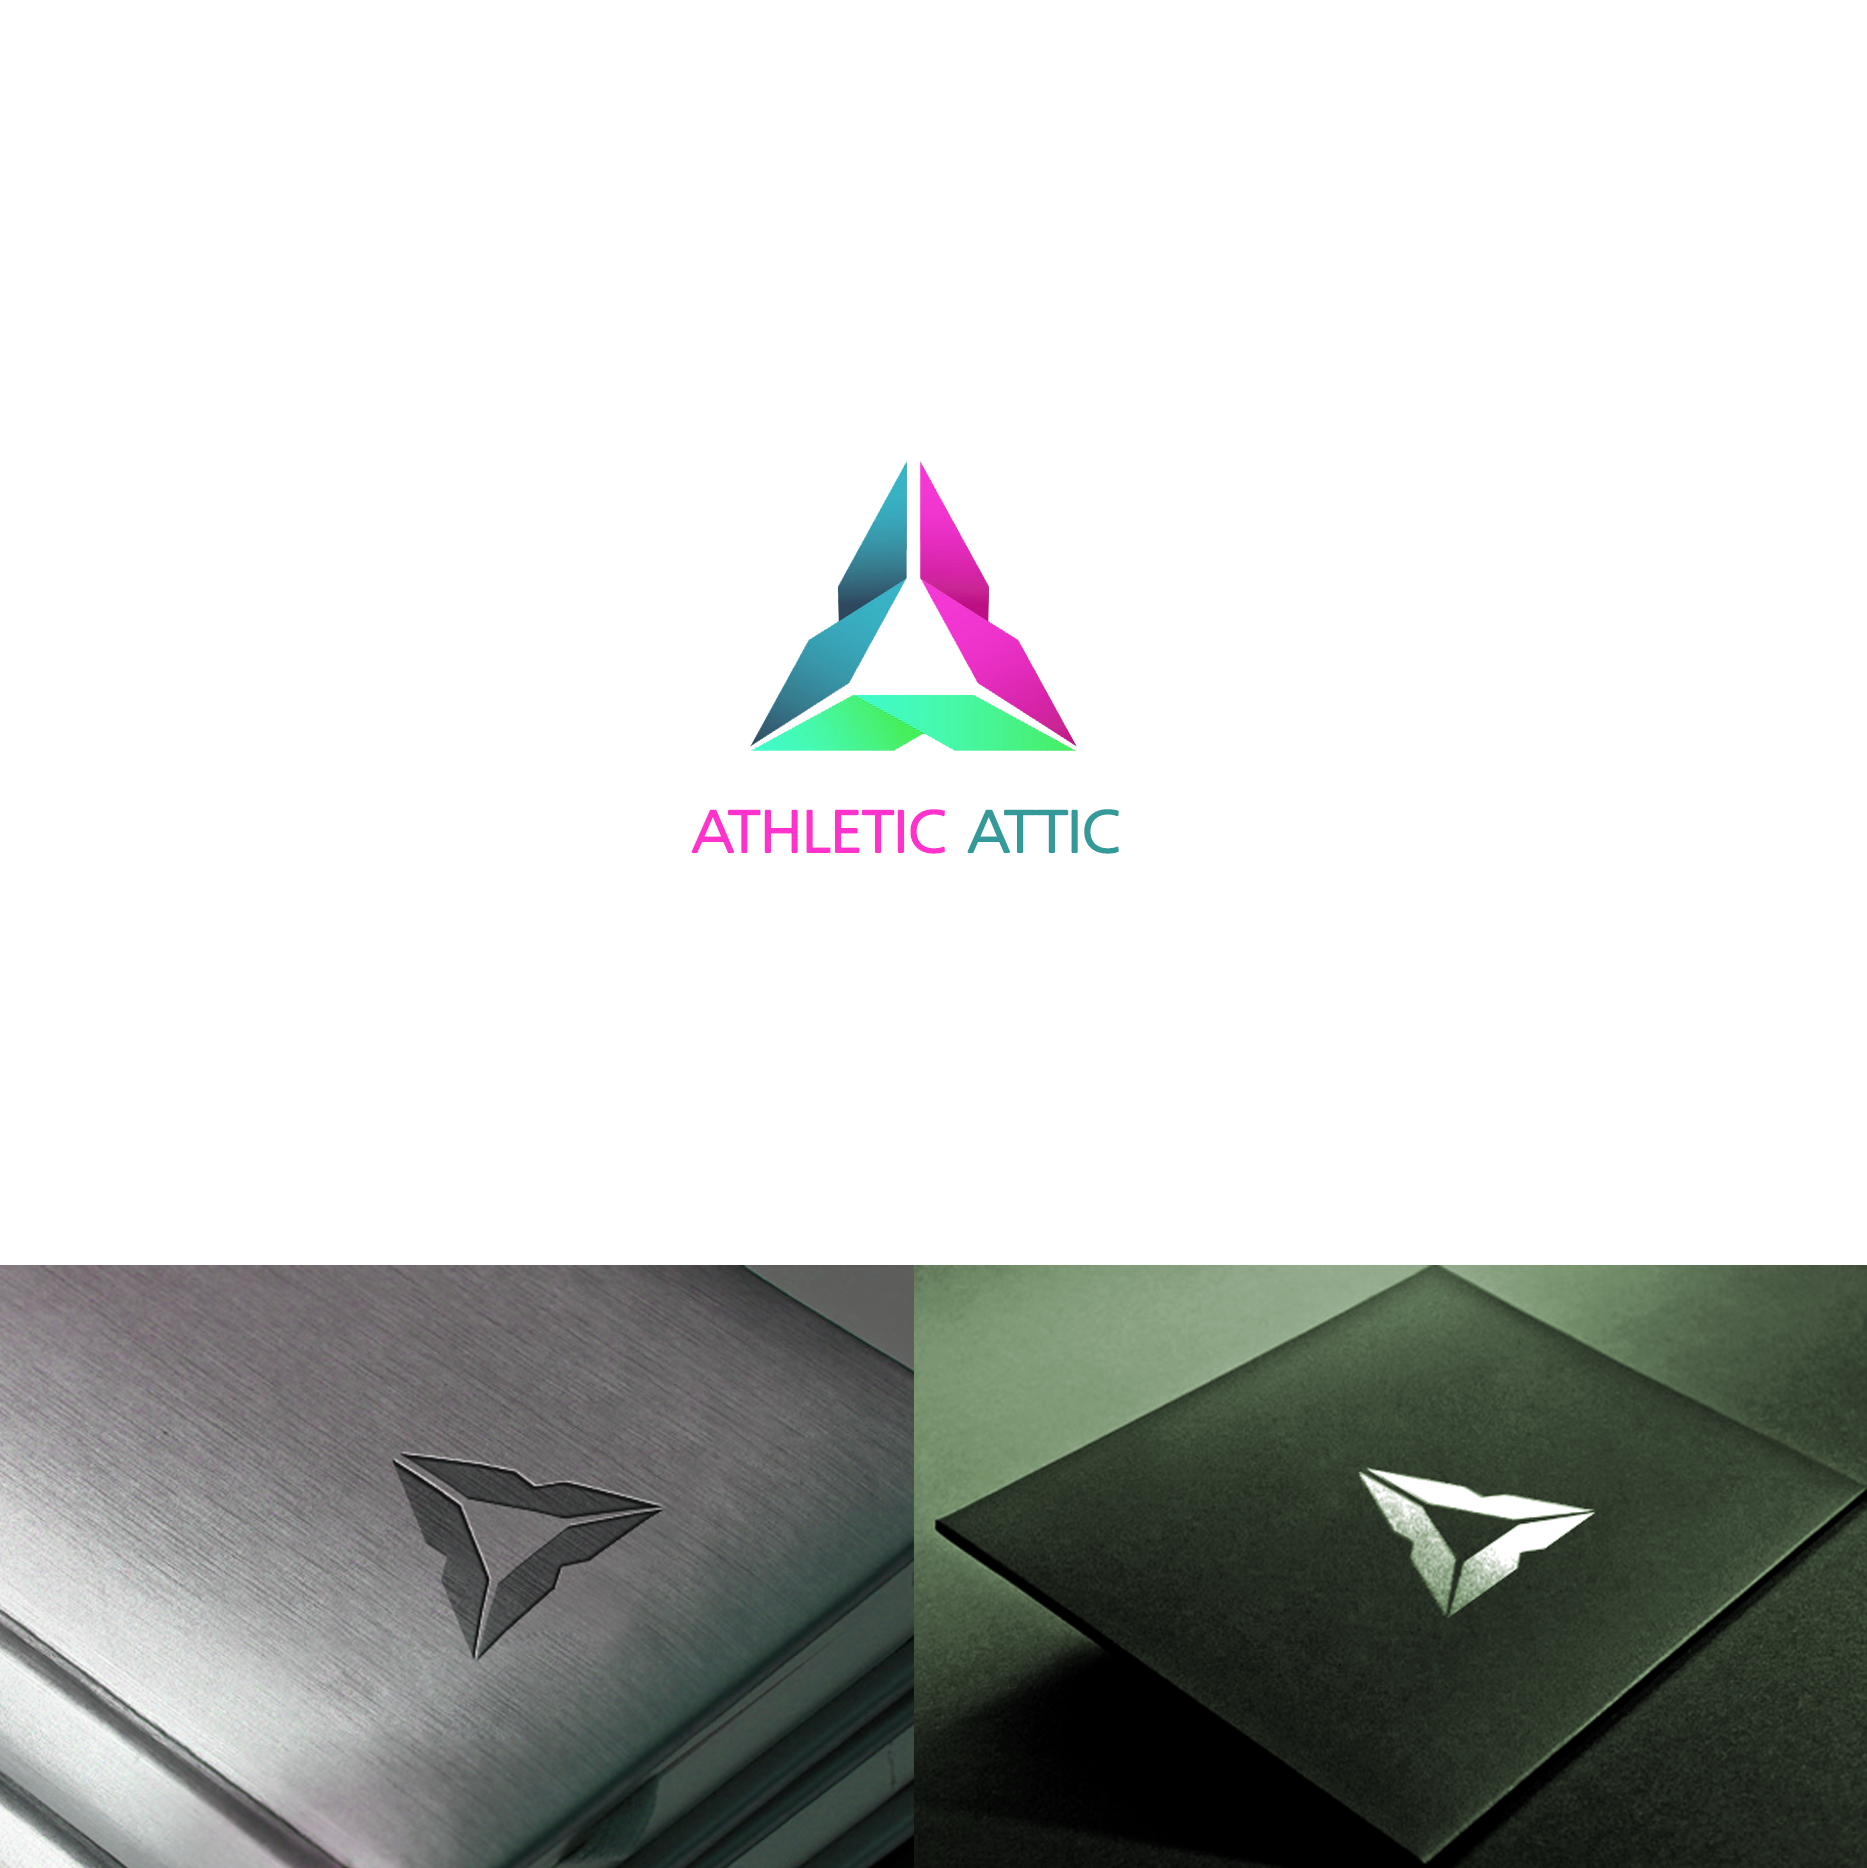 Logo Design by Serhat Doymuş - Entry No. 160 in the Logo Design Contest Fun Logo Design for Athletic Attic.